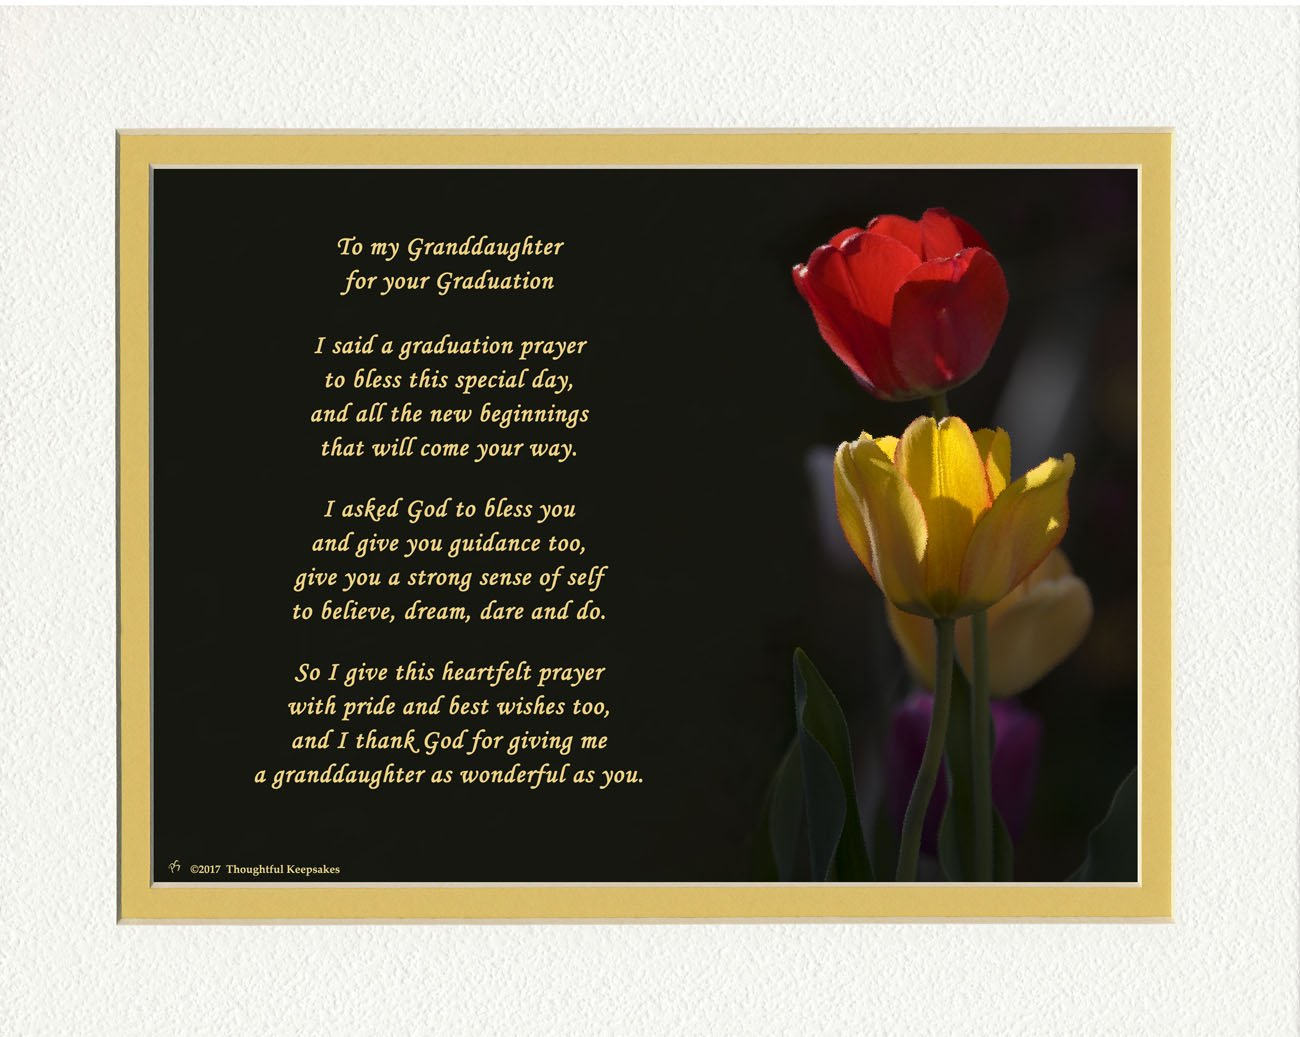 Graduation Gifts Granddaughter with Granddaughter Graduation Prayer Poem Tulips Photo, 8x10 Double Matted. Special Keepsake for Granddaughter. Unique College - High School Grad Gift